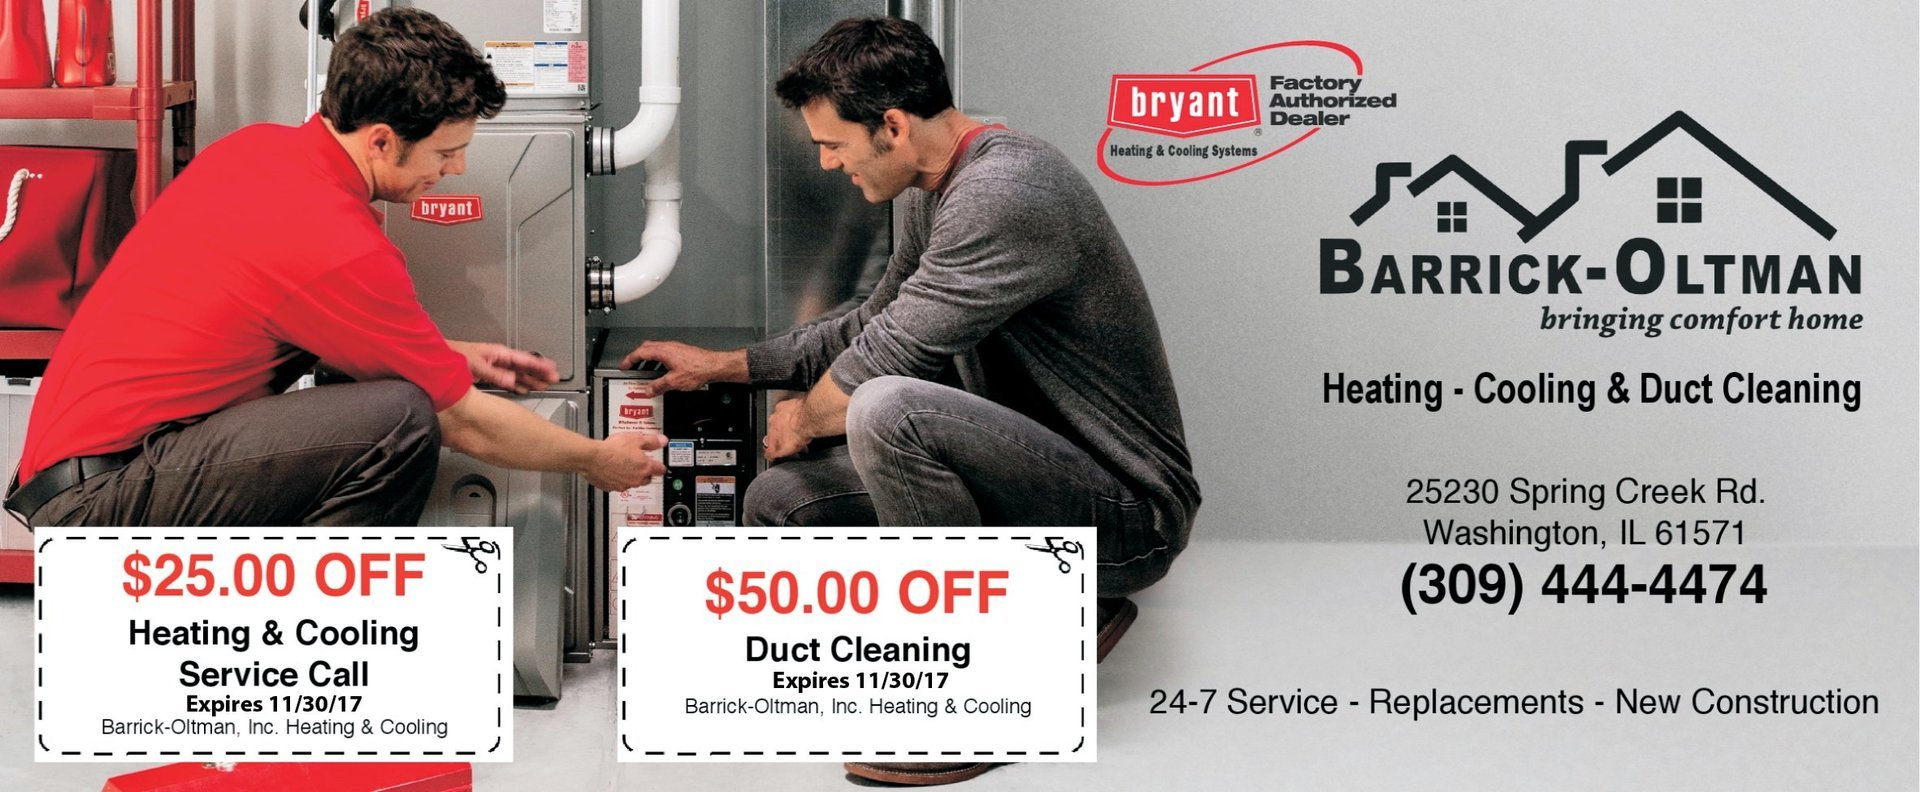 Barrick-Oltman Heating and Cooling Duct Cleaning Washington, IL